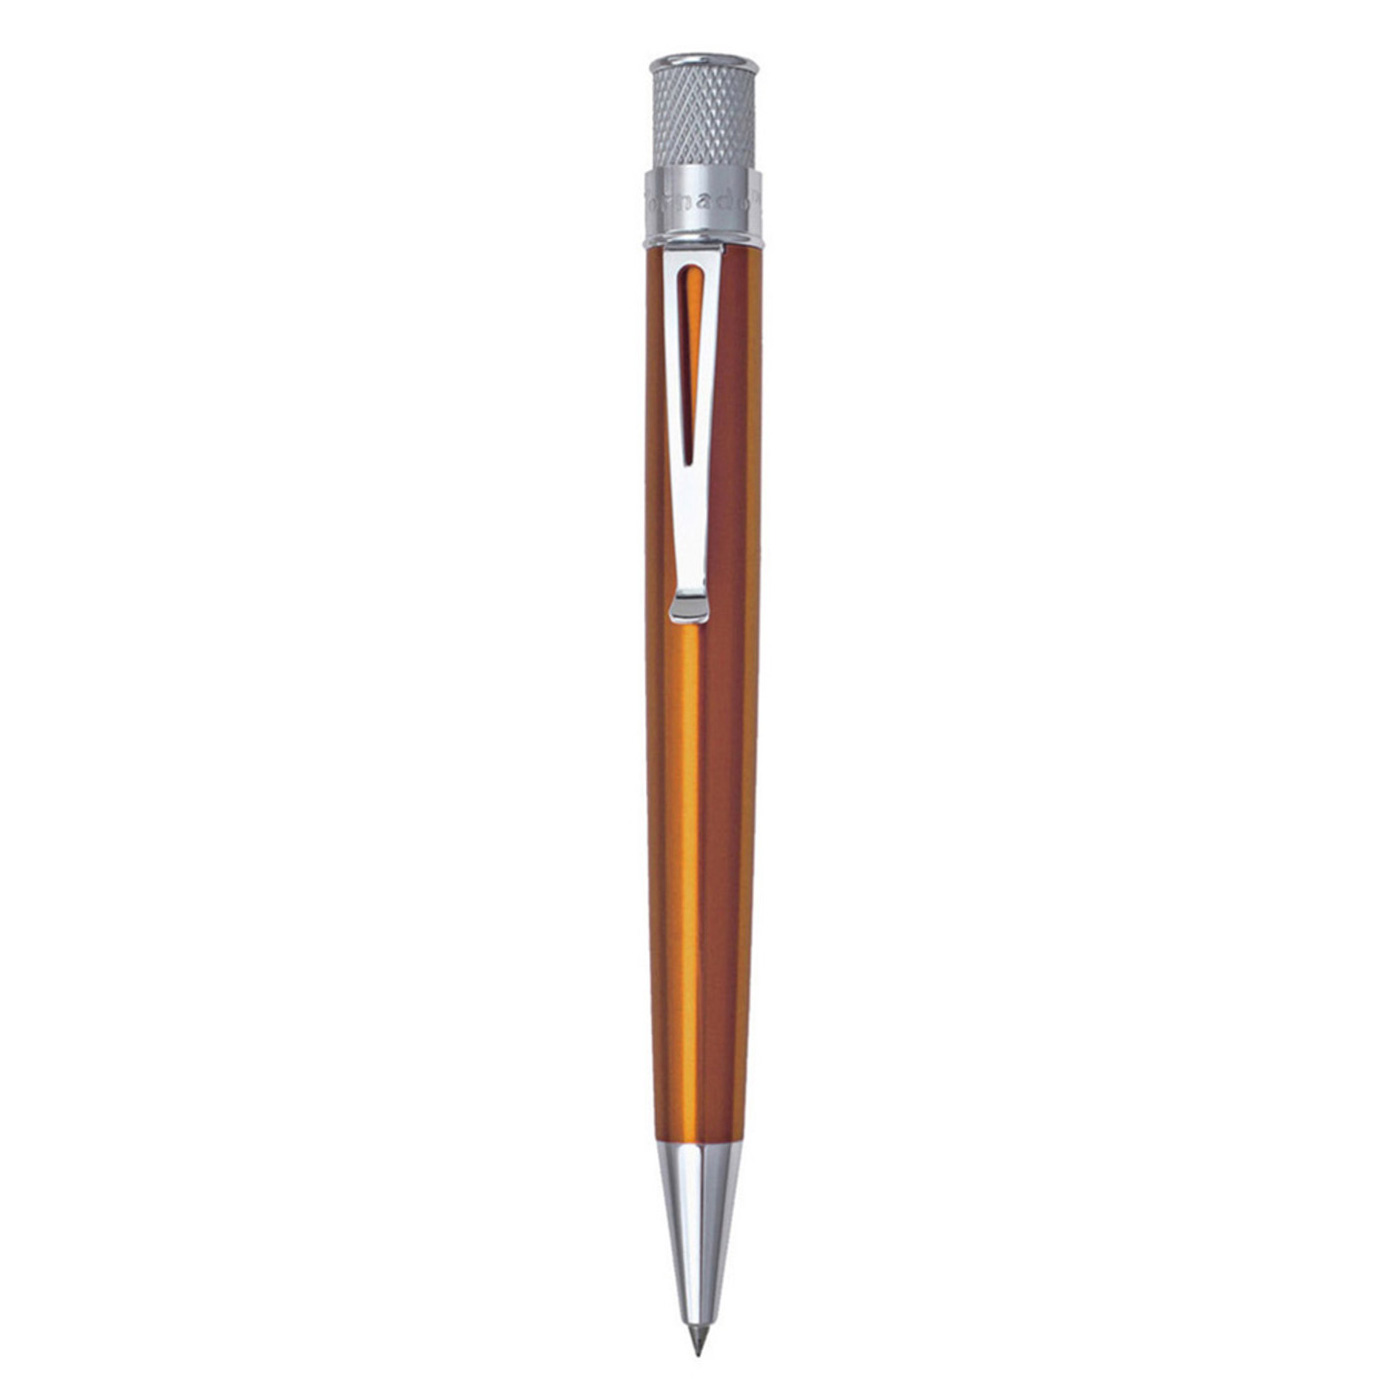 Retro 1951 Tornado Classic Rollerball Pen Orange